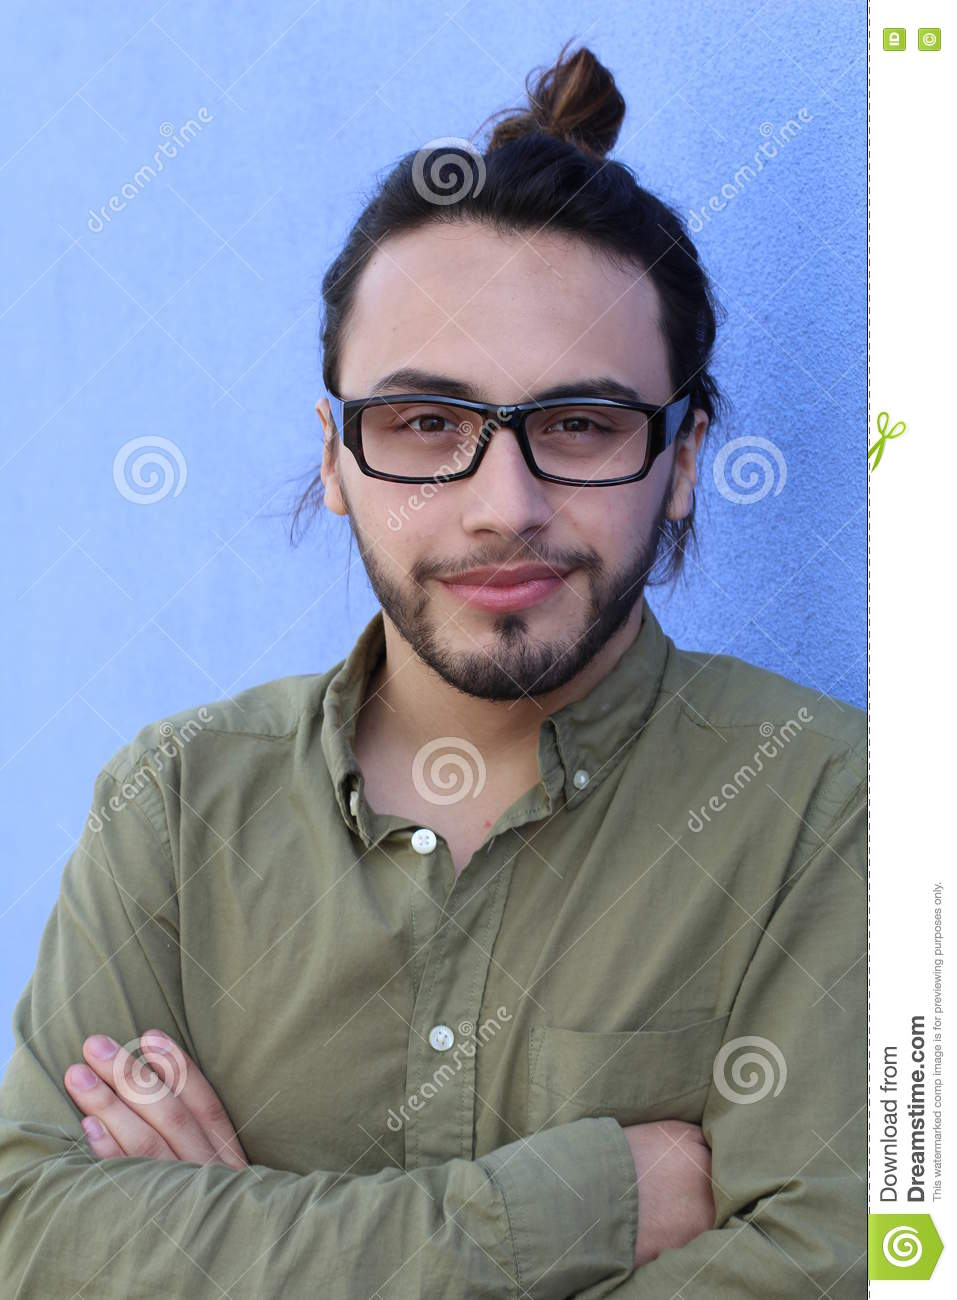 man hipster style fashion guy beard glasses portrait casual person